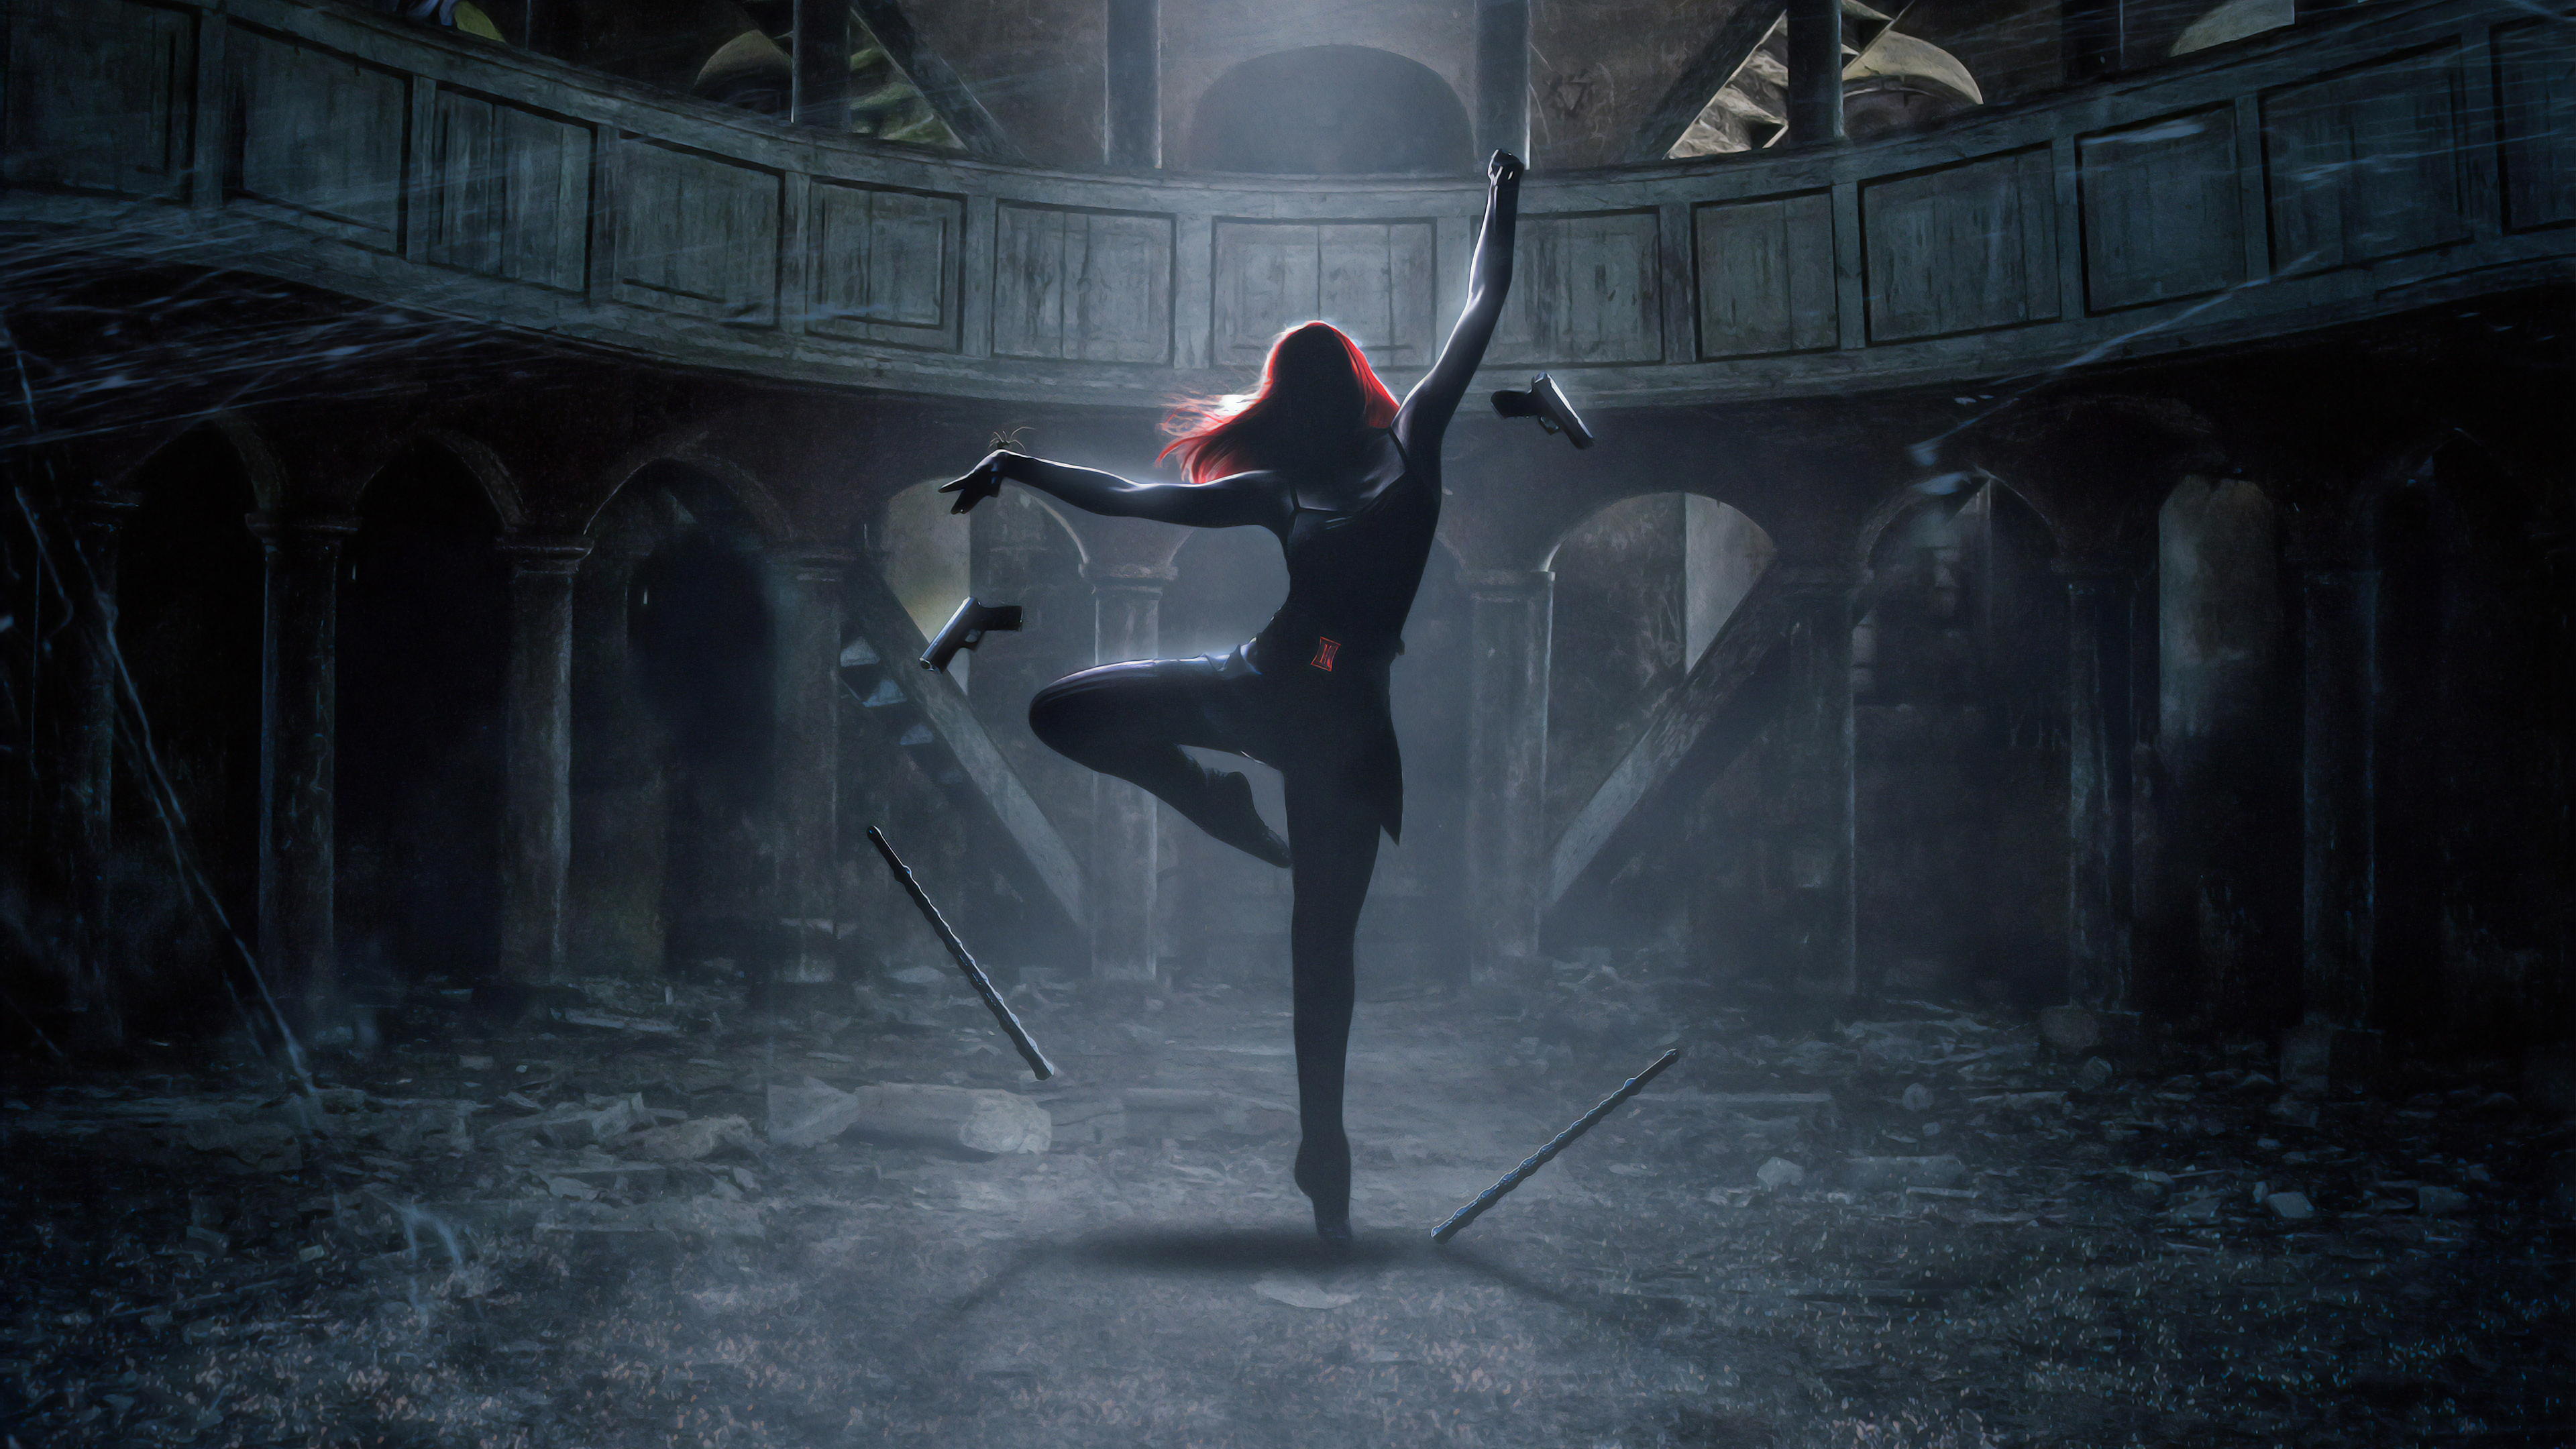 Black Widow The Dance 4k Hd Superheroes 4k Wallpapers